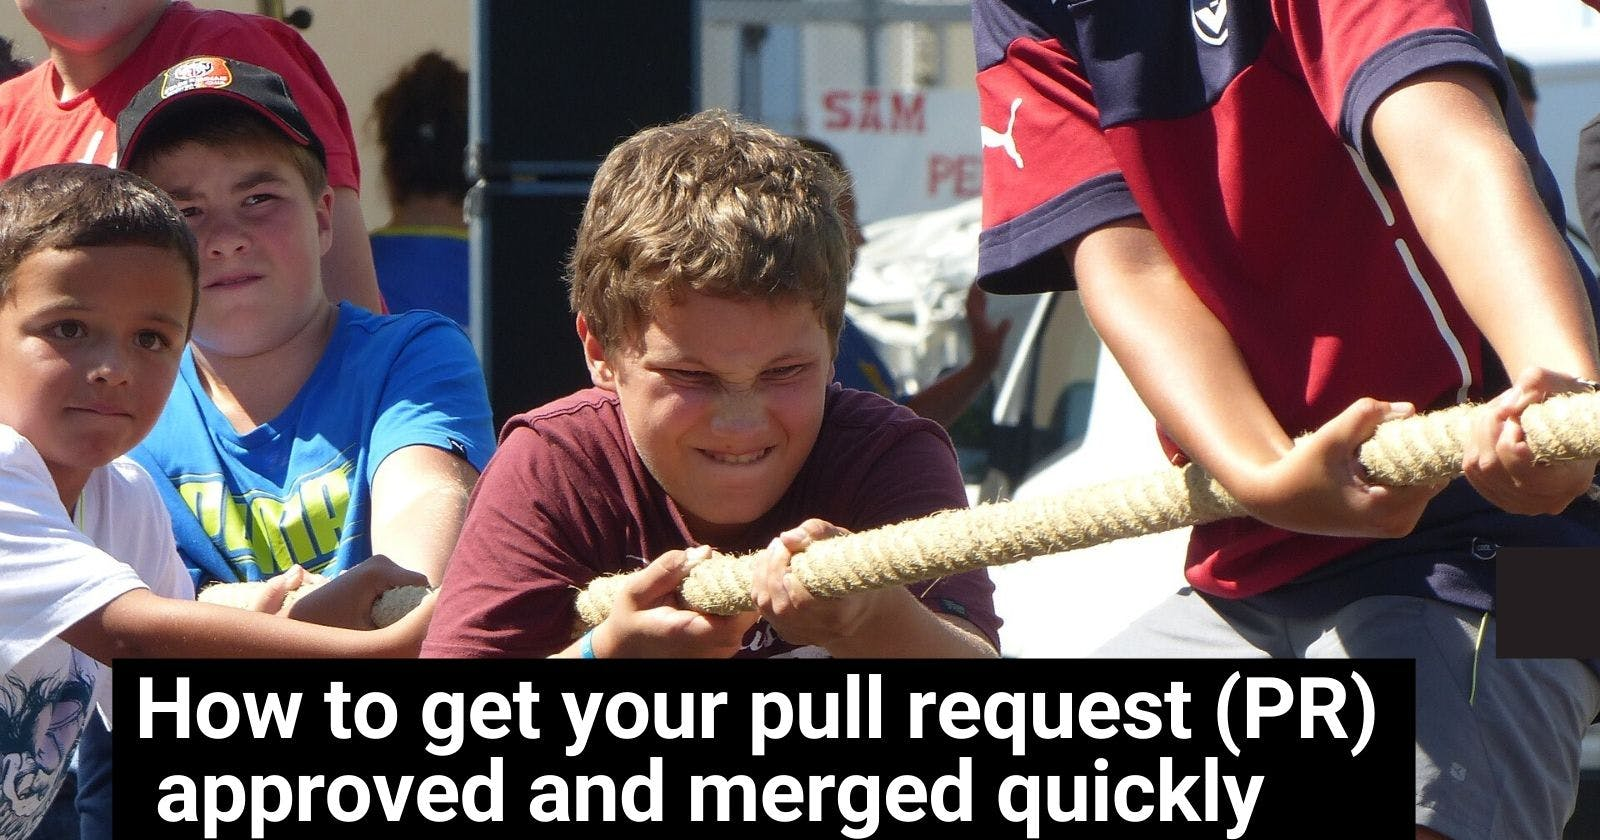 How to get your pull request (PR) approved and merged quickly